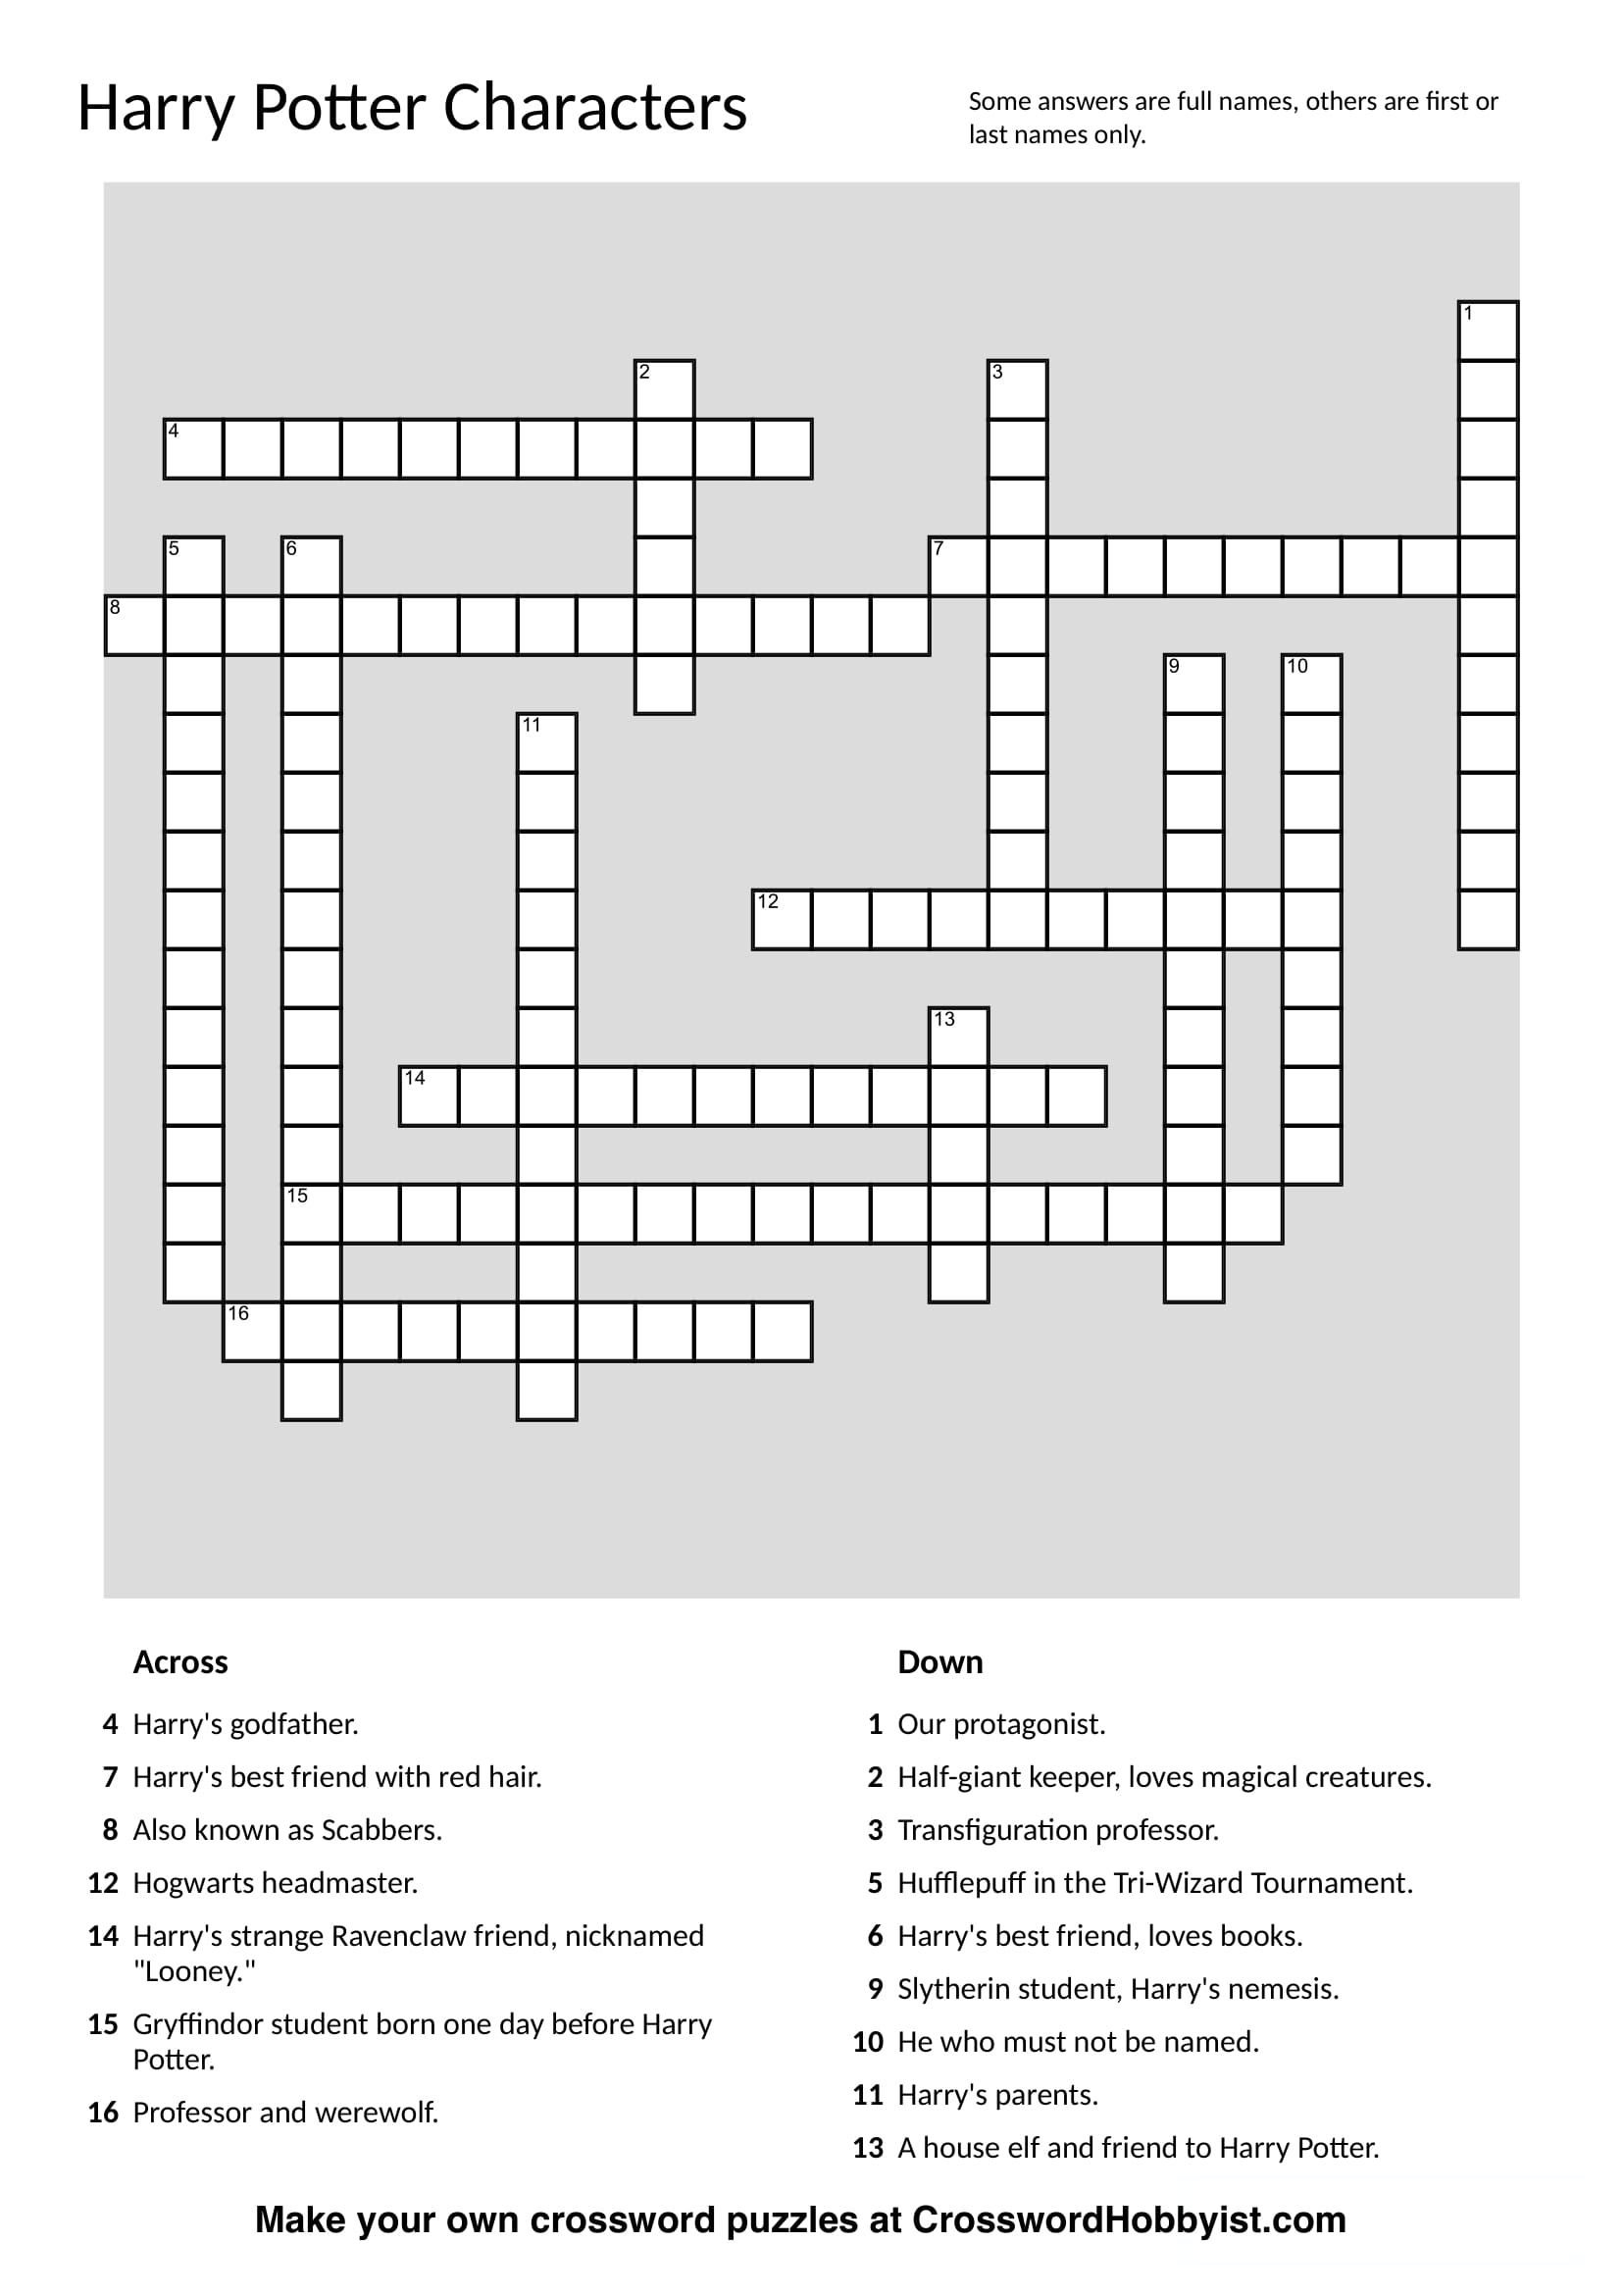 This Harry Potter Characters Crossword Puzzle Was Made At - Make My Own Crossword Puzzles Printable